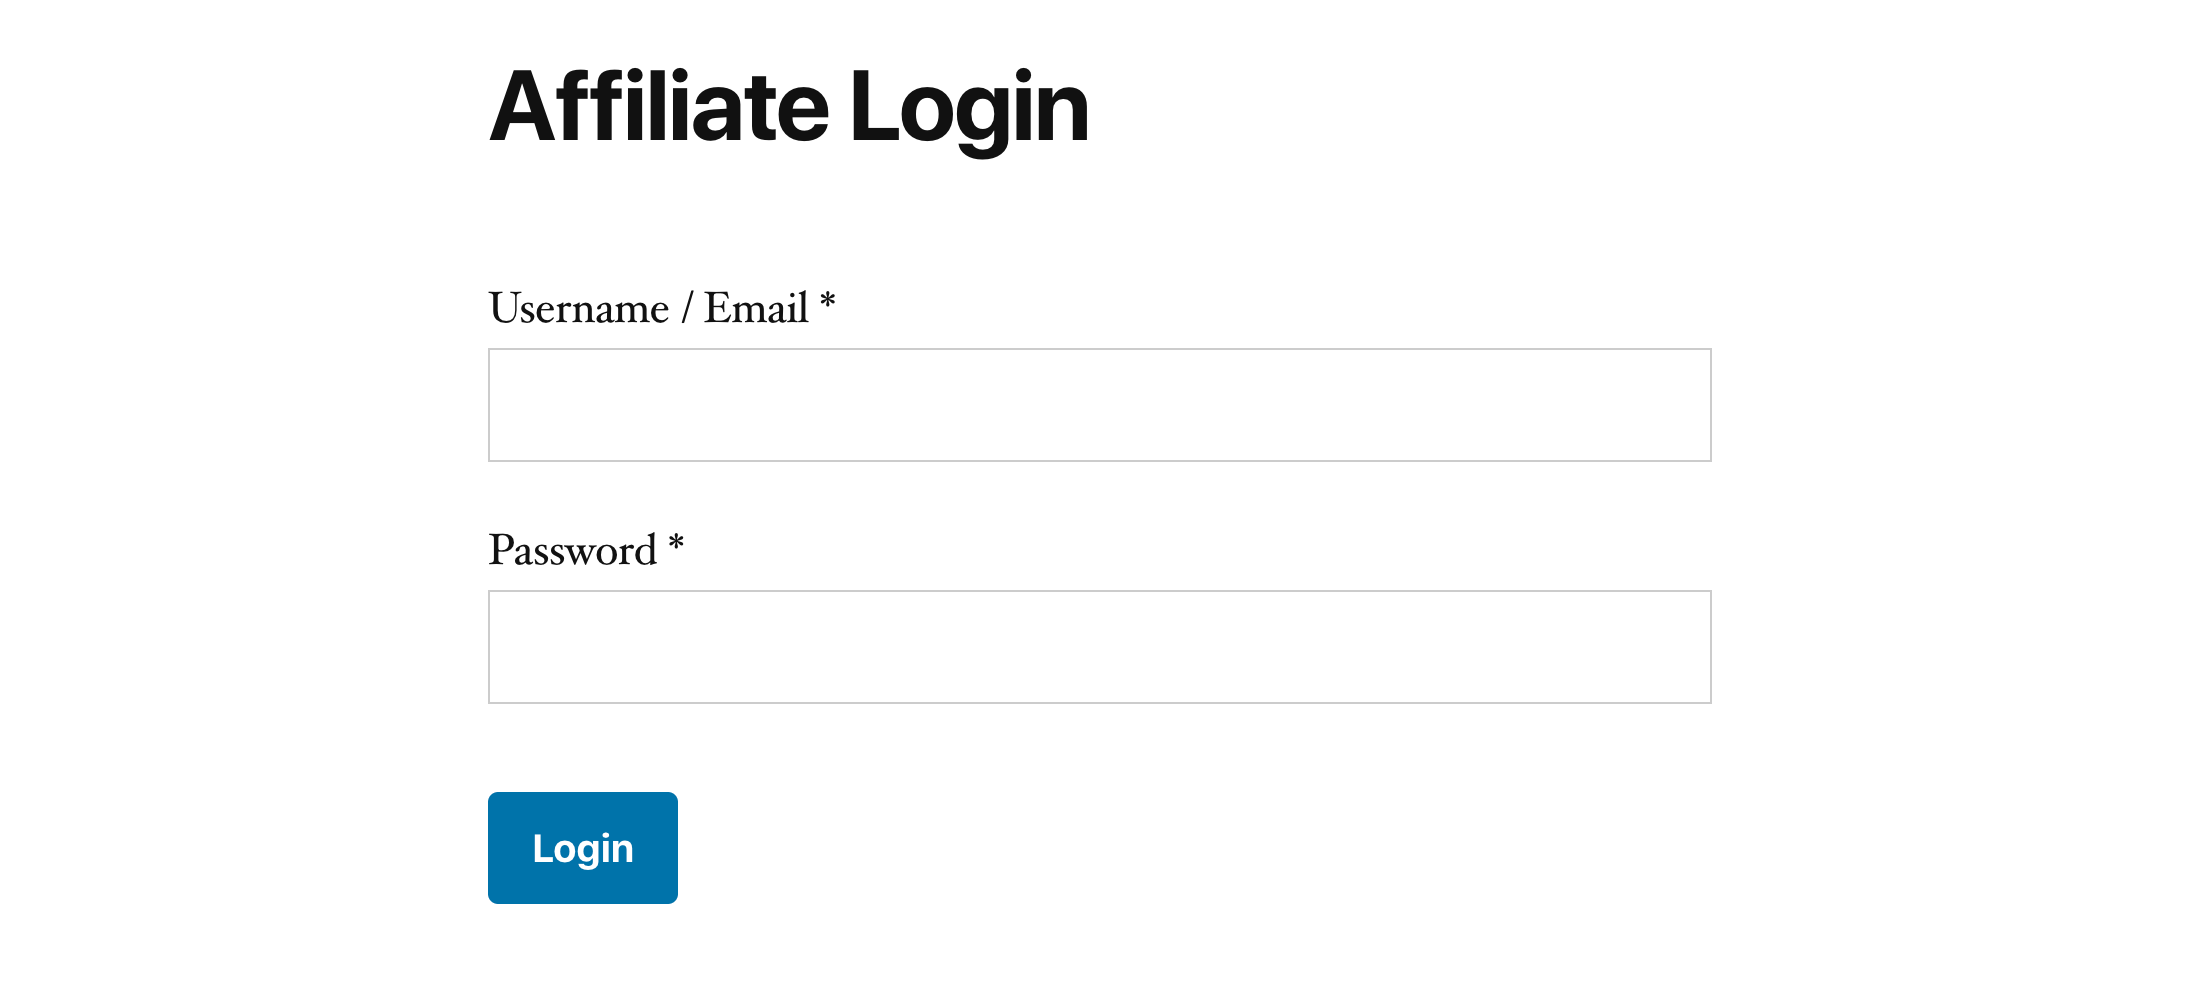 Affiliate login form design on visitor side